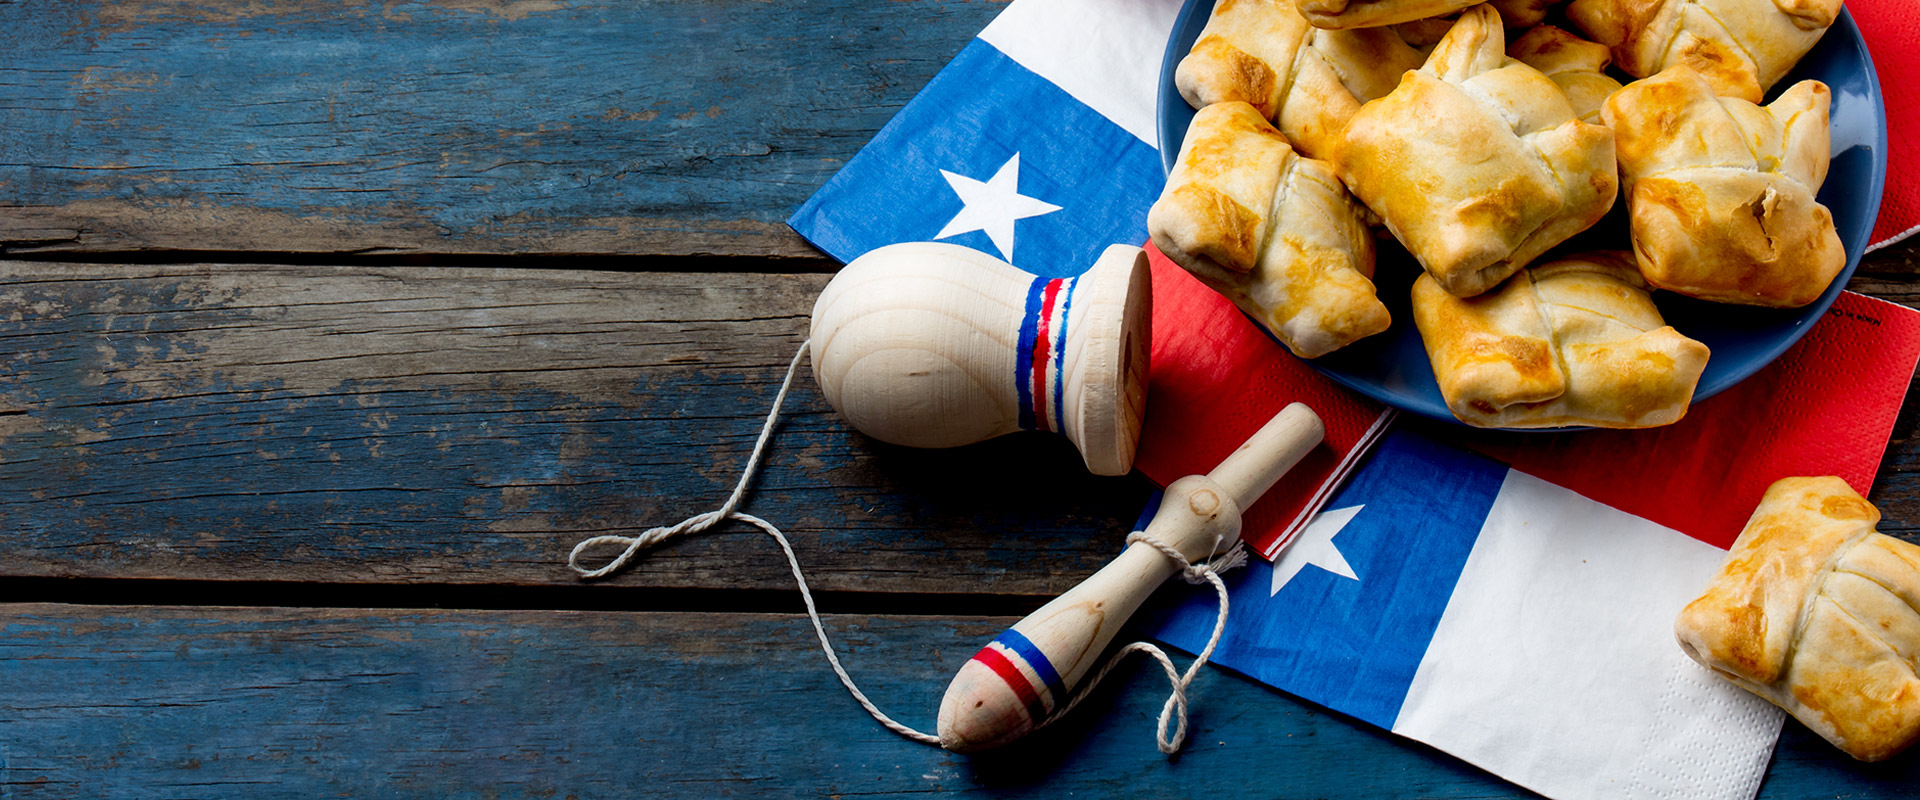 How do foreigners see the national holidays of Chile?